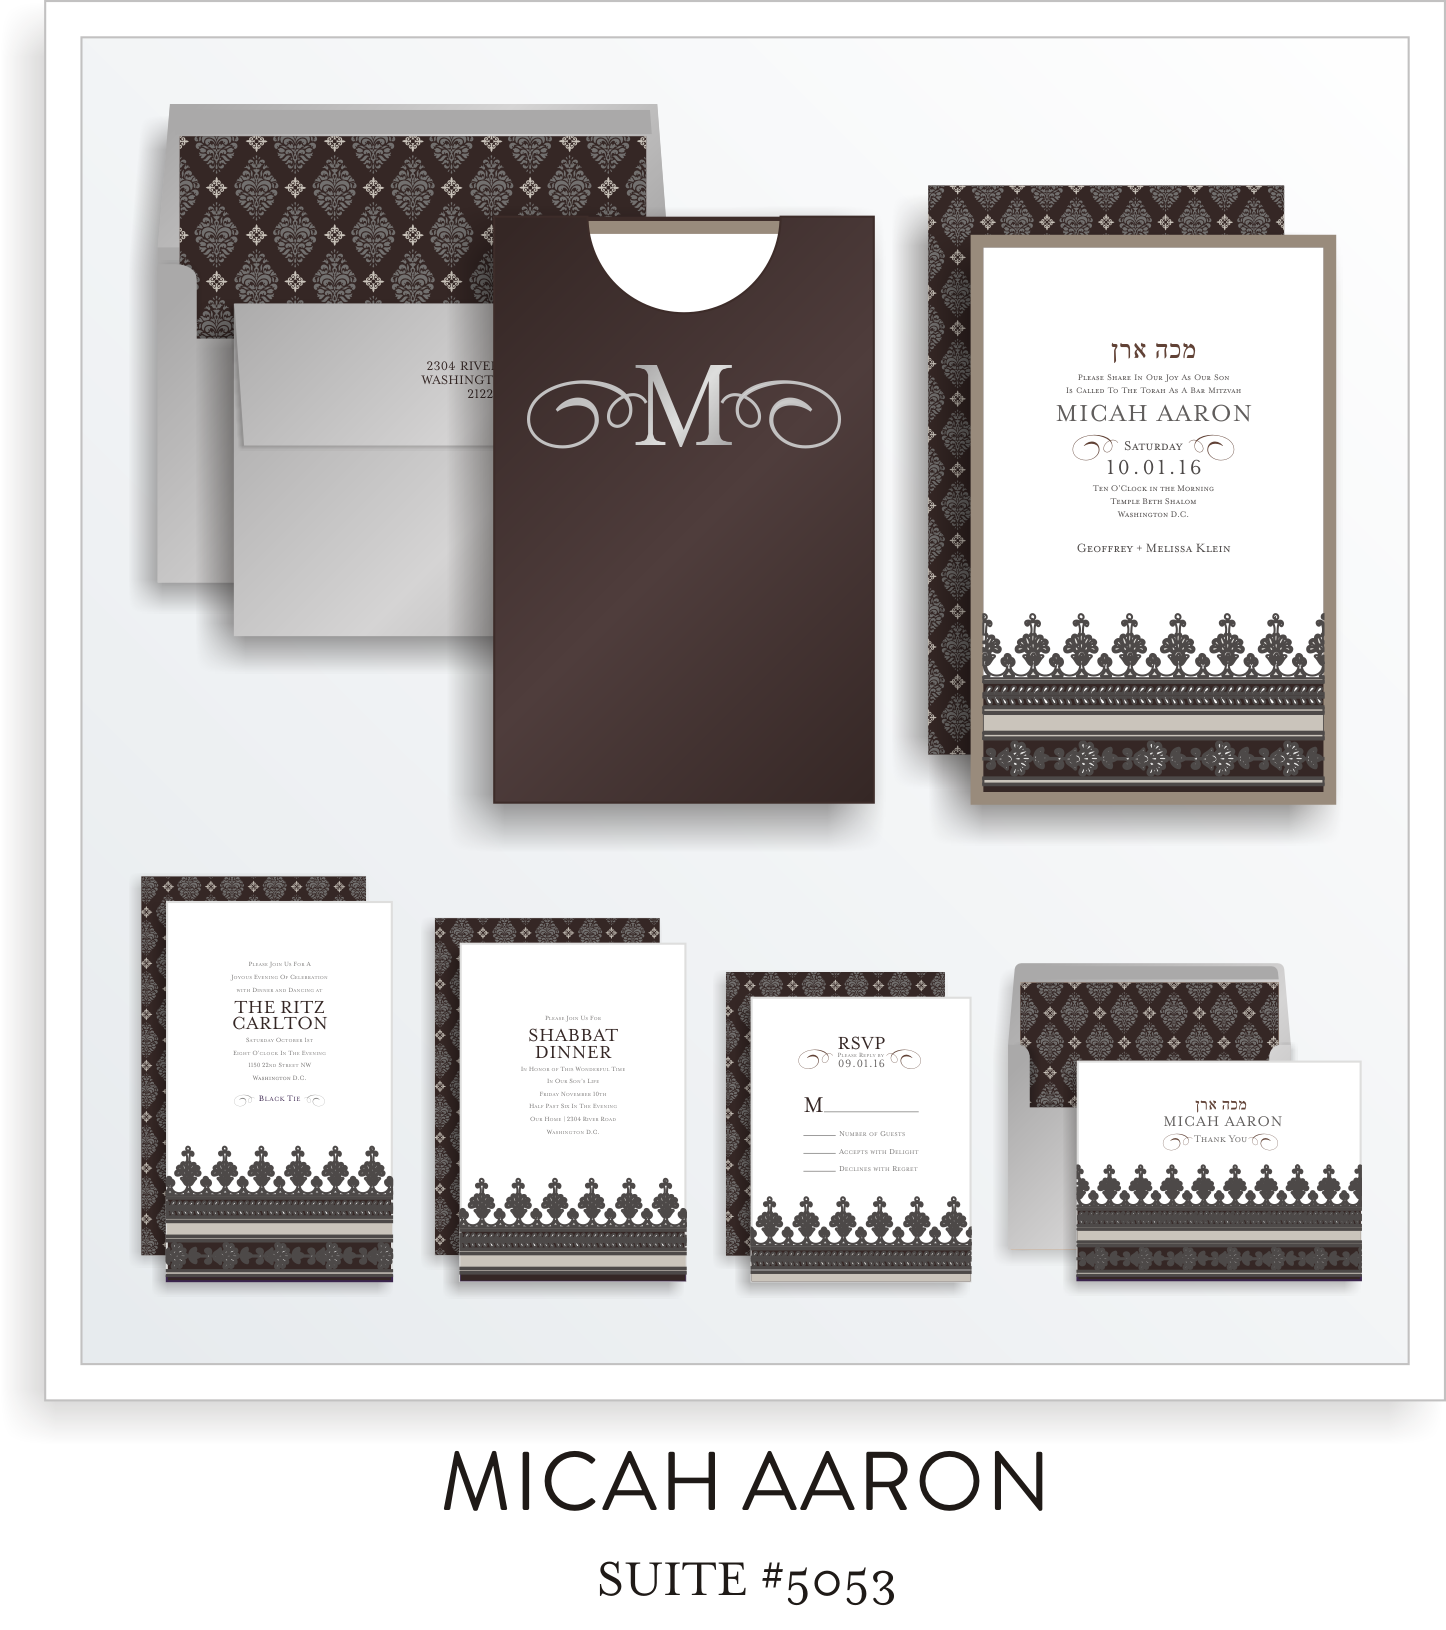 Copy of bar mitzvah invitation suite 5053